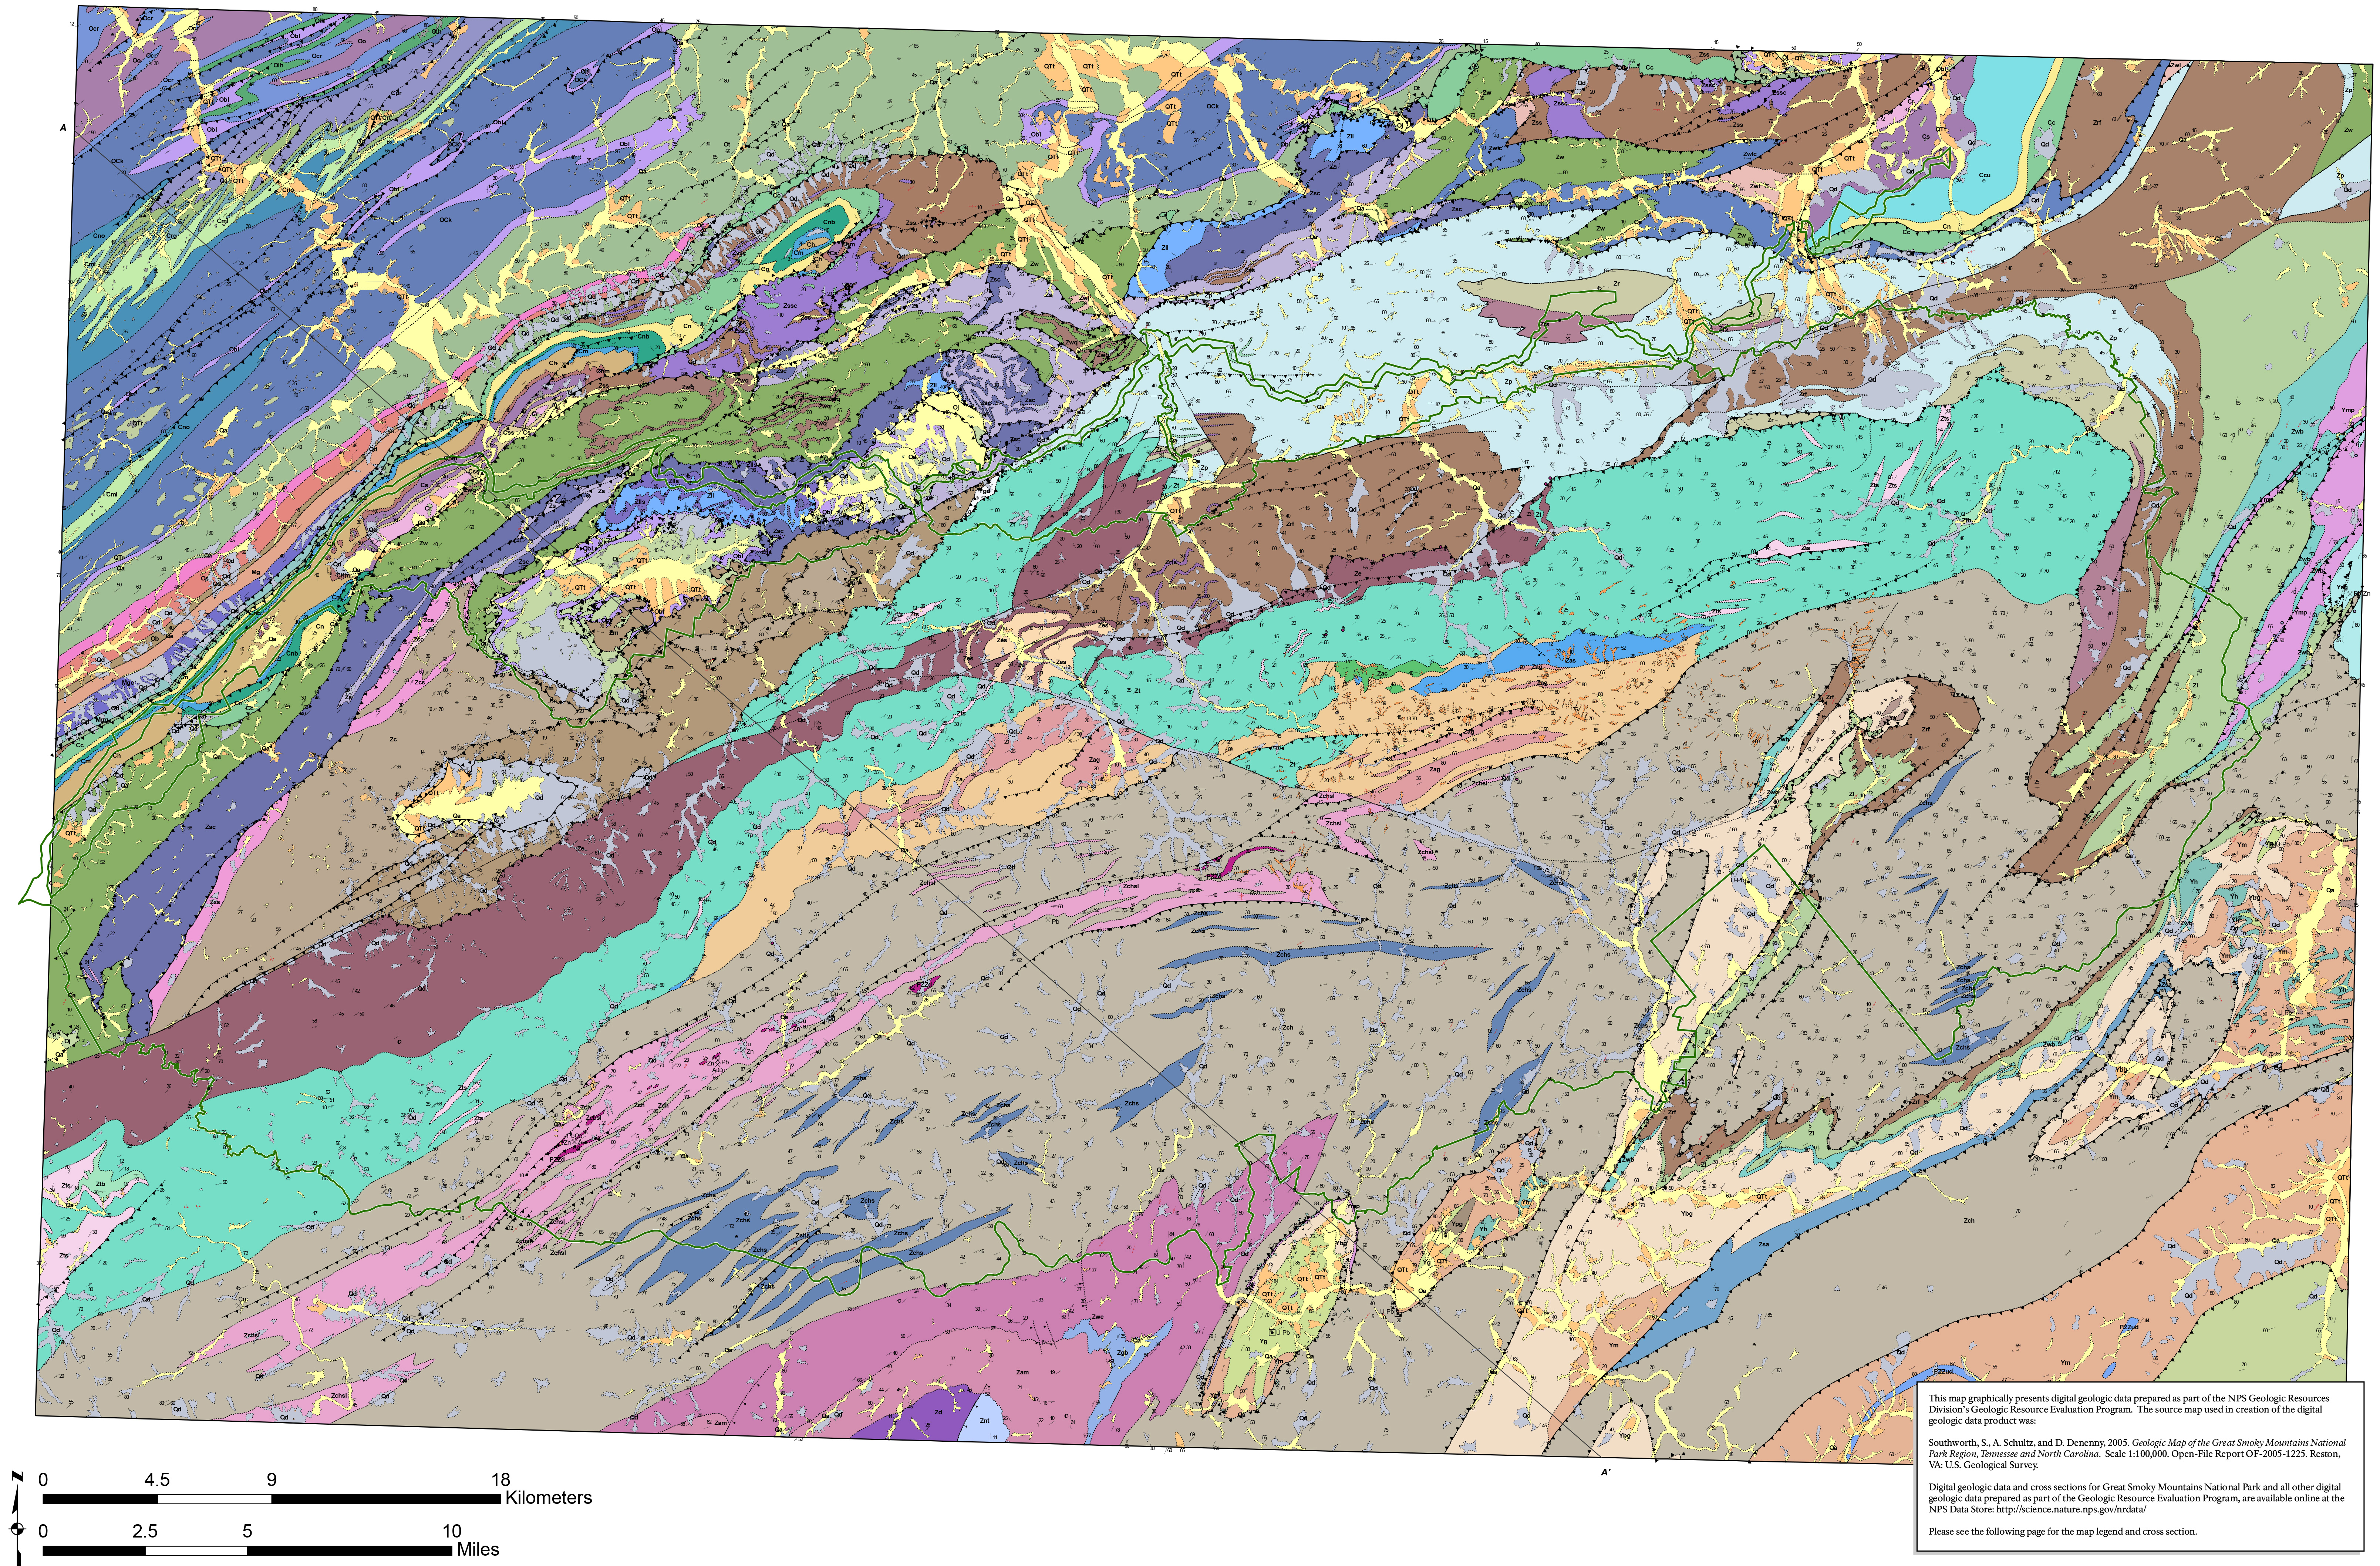 FileNPS greatsmokymountainsgeologicmapjpg Wikimedia Commons